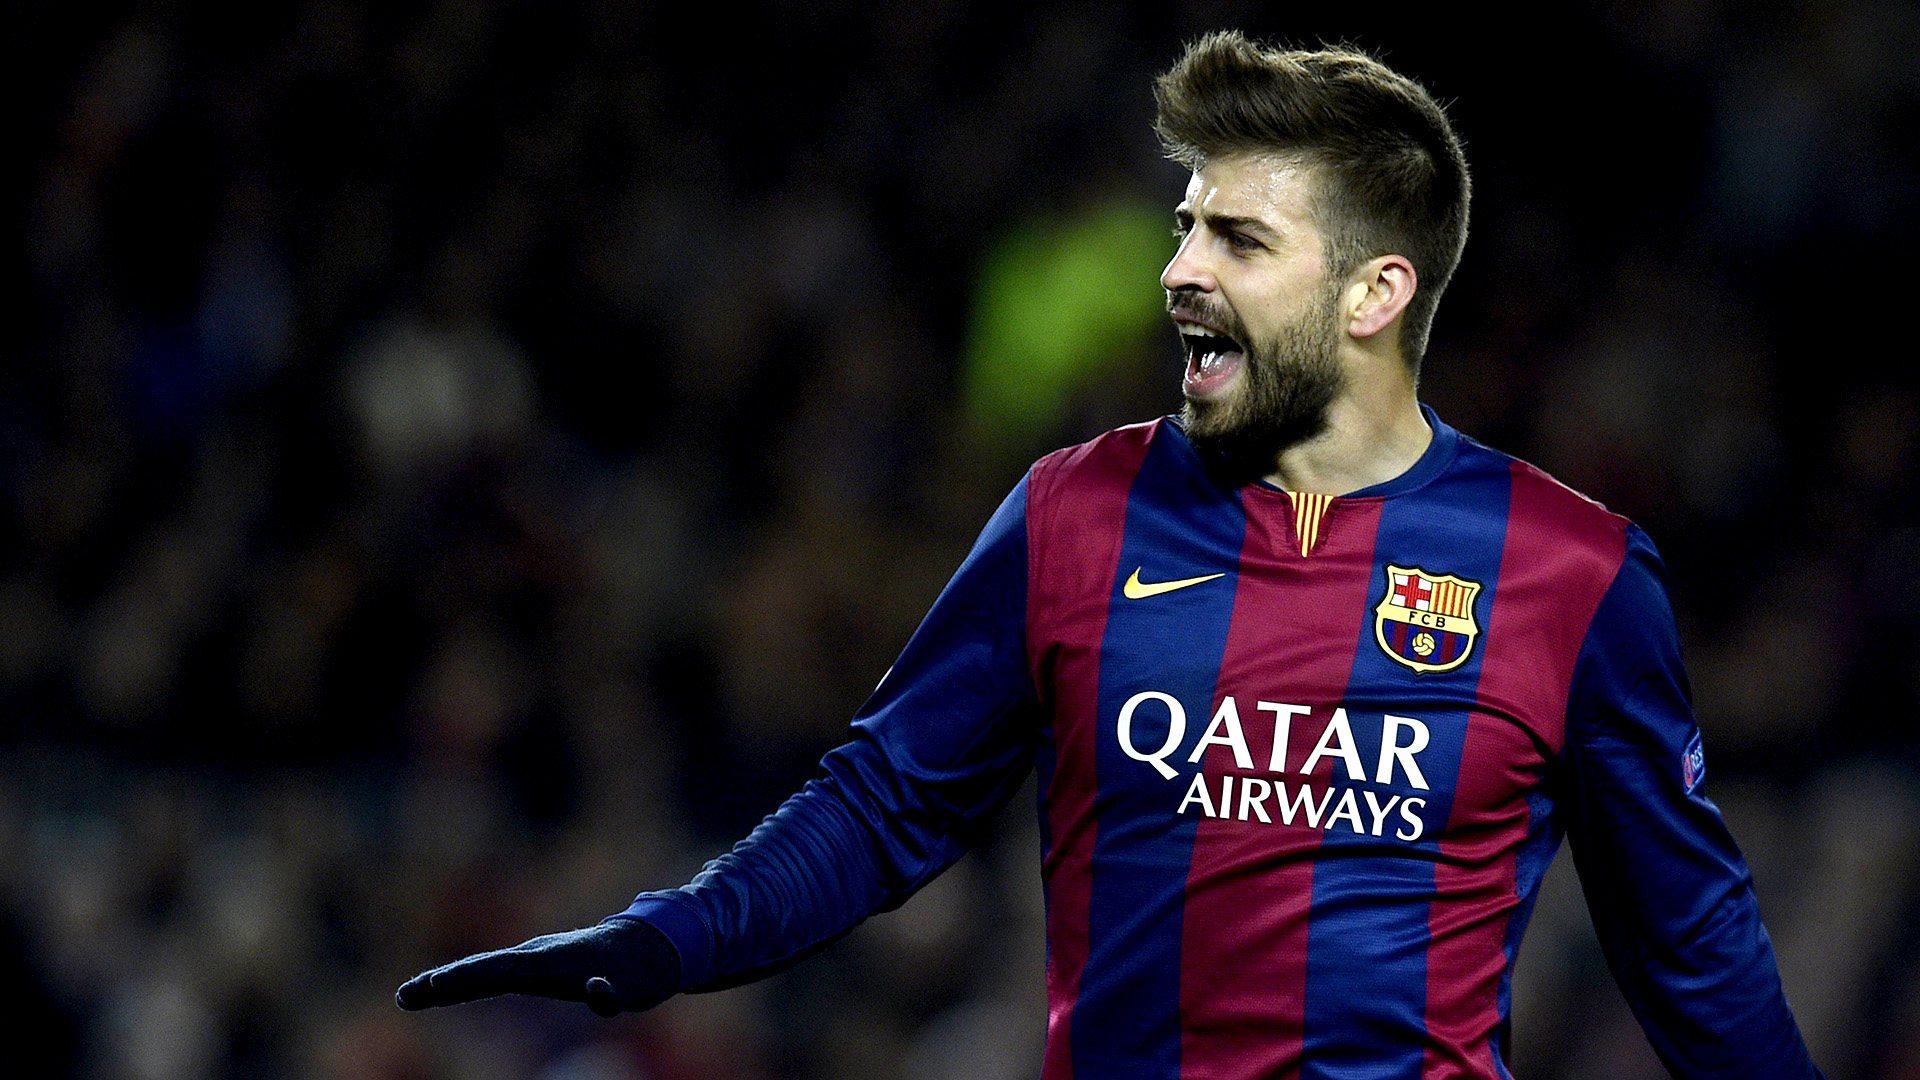 Pique will play his 200th match tonight